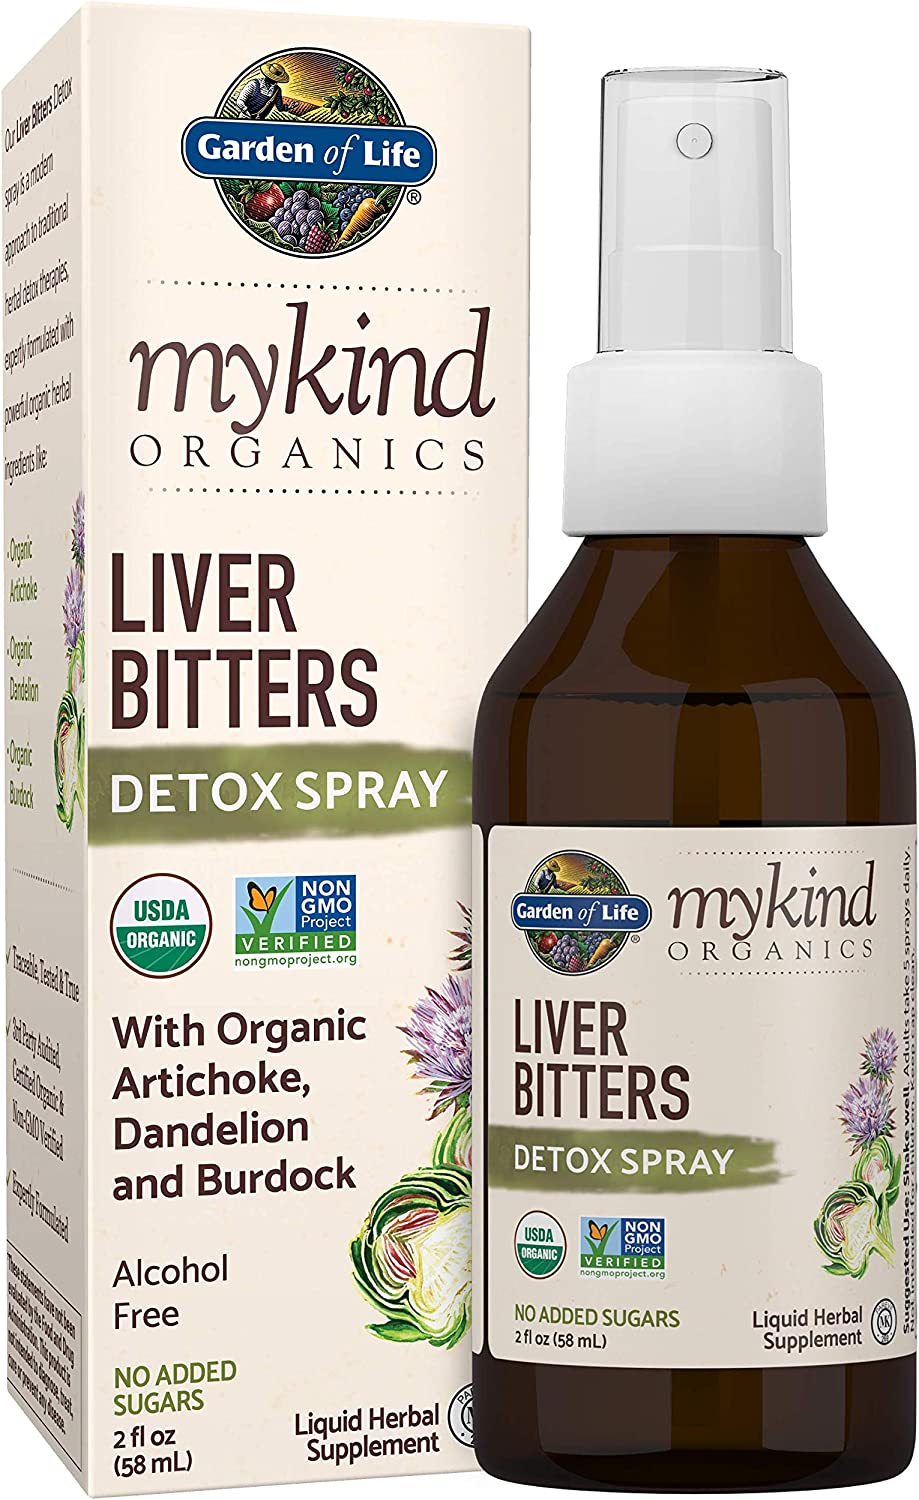 Al sold out. Garden of Life mykind Organics Bitters Liver Online limited product Spray Detox